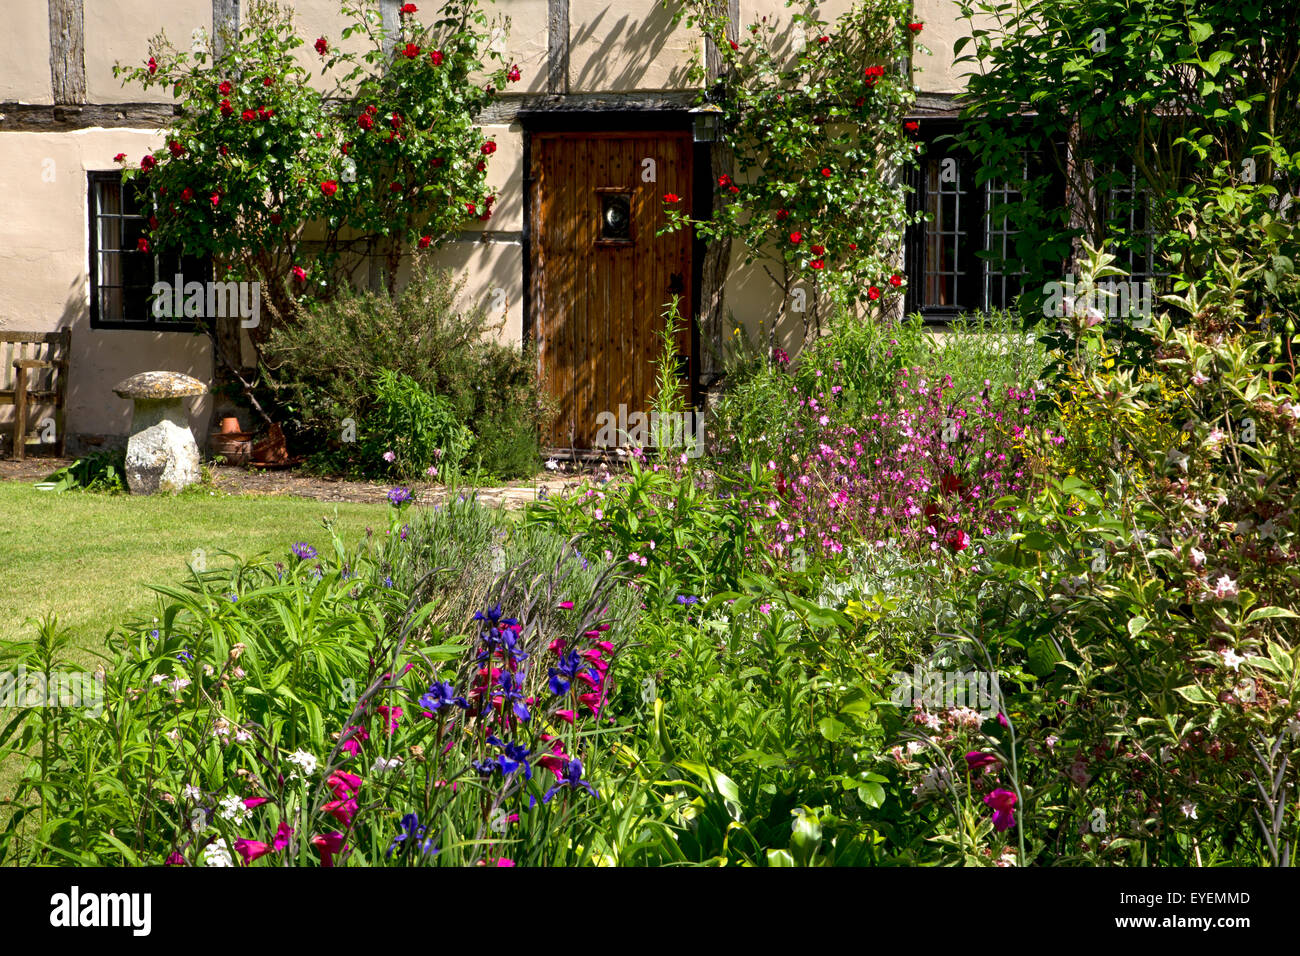 Terrific Old English Manor House With Summer Flower Boarder Stock Download Free Architecture Designs Rallybritishbridgeorg